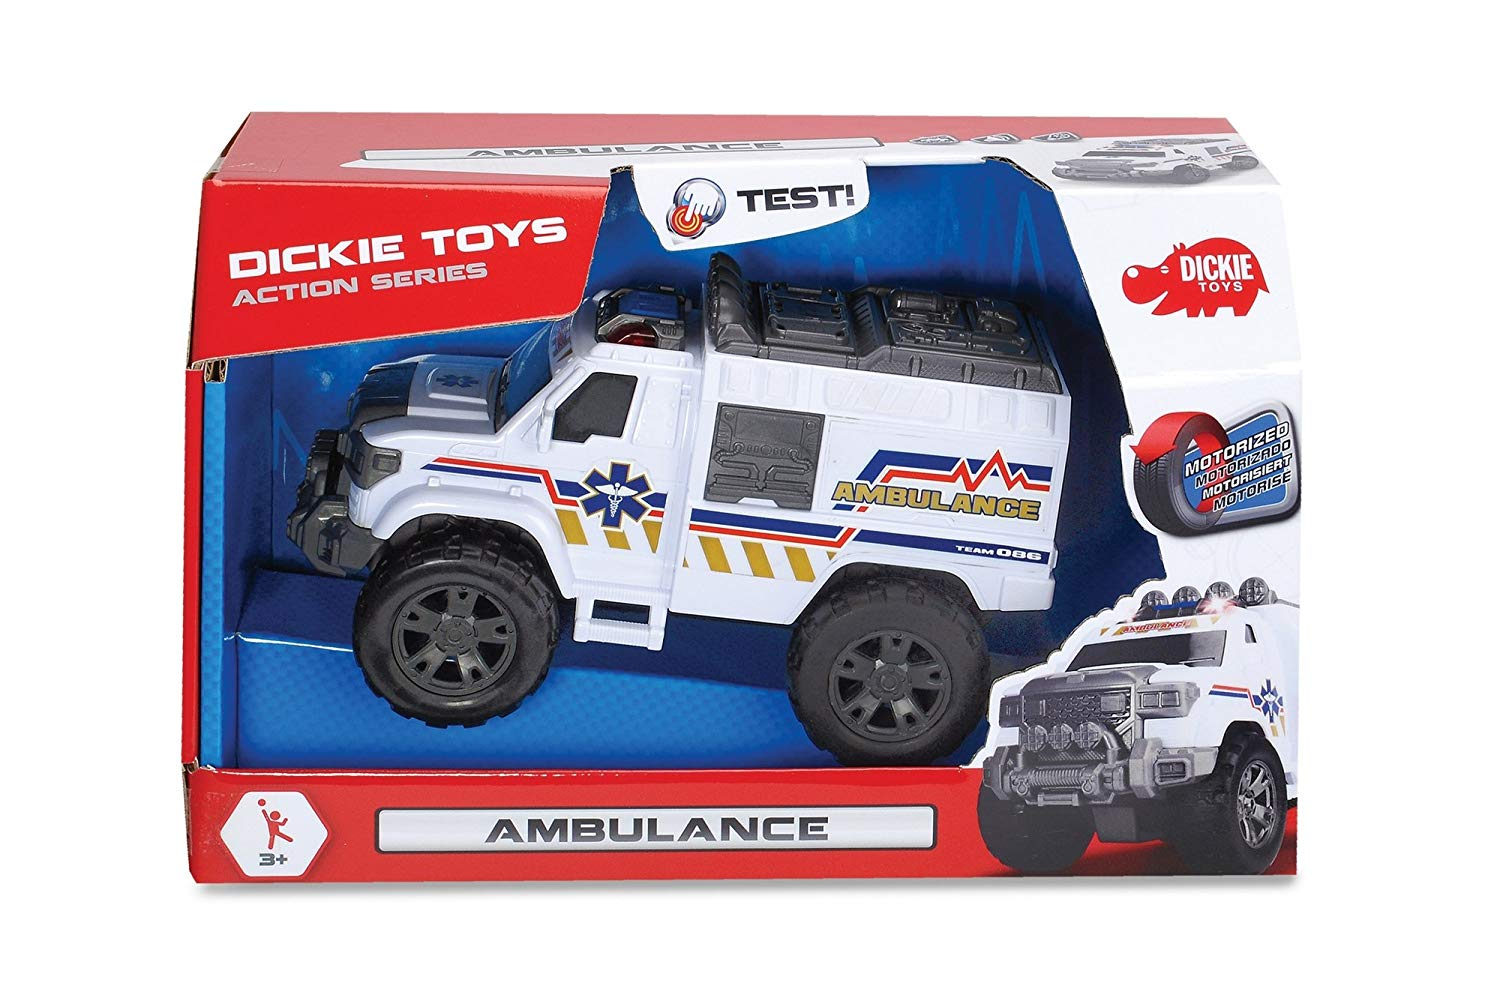 Masinuta de ambulanta Dickie Toys Ambulance imagine